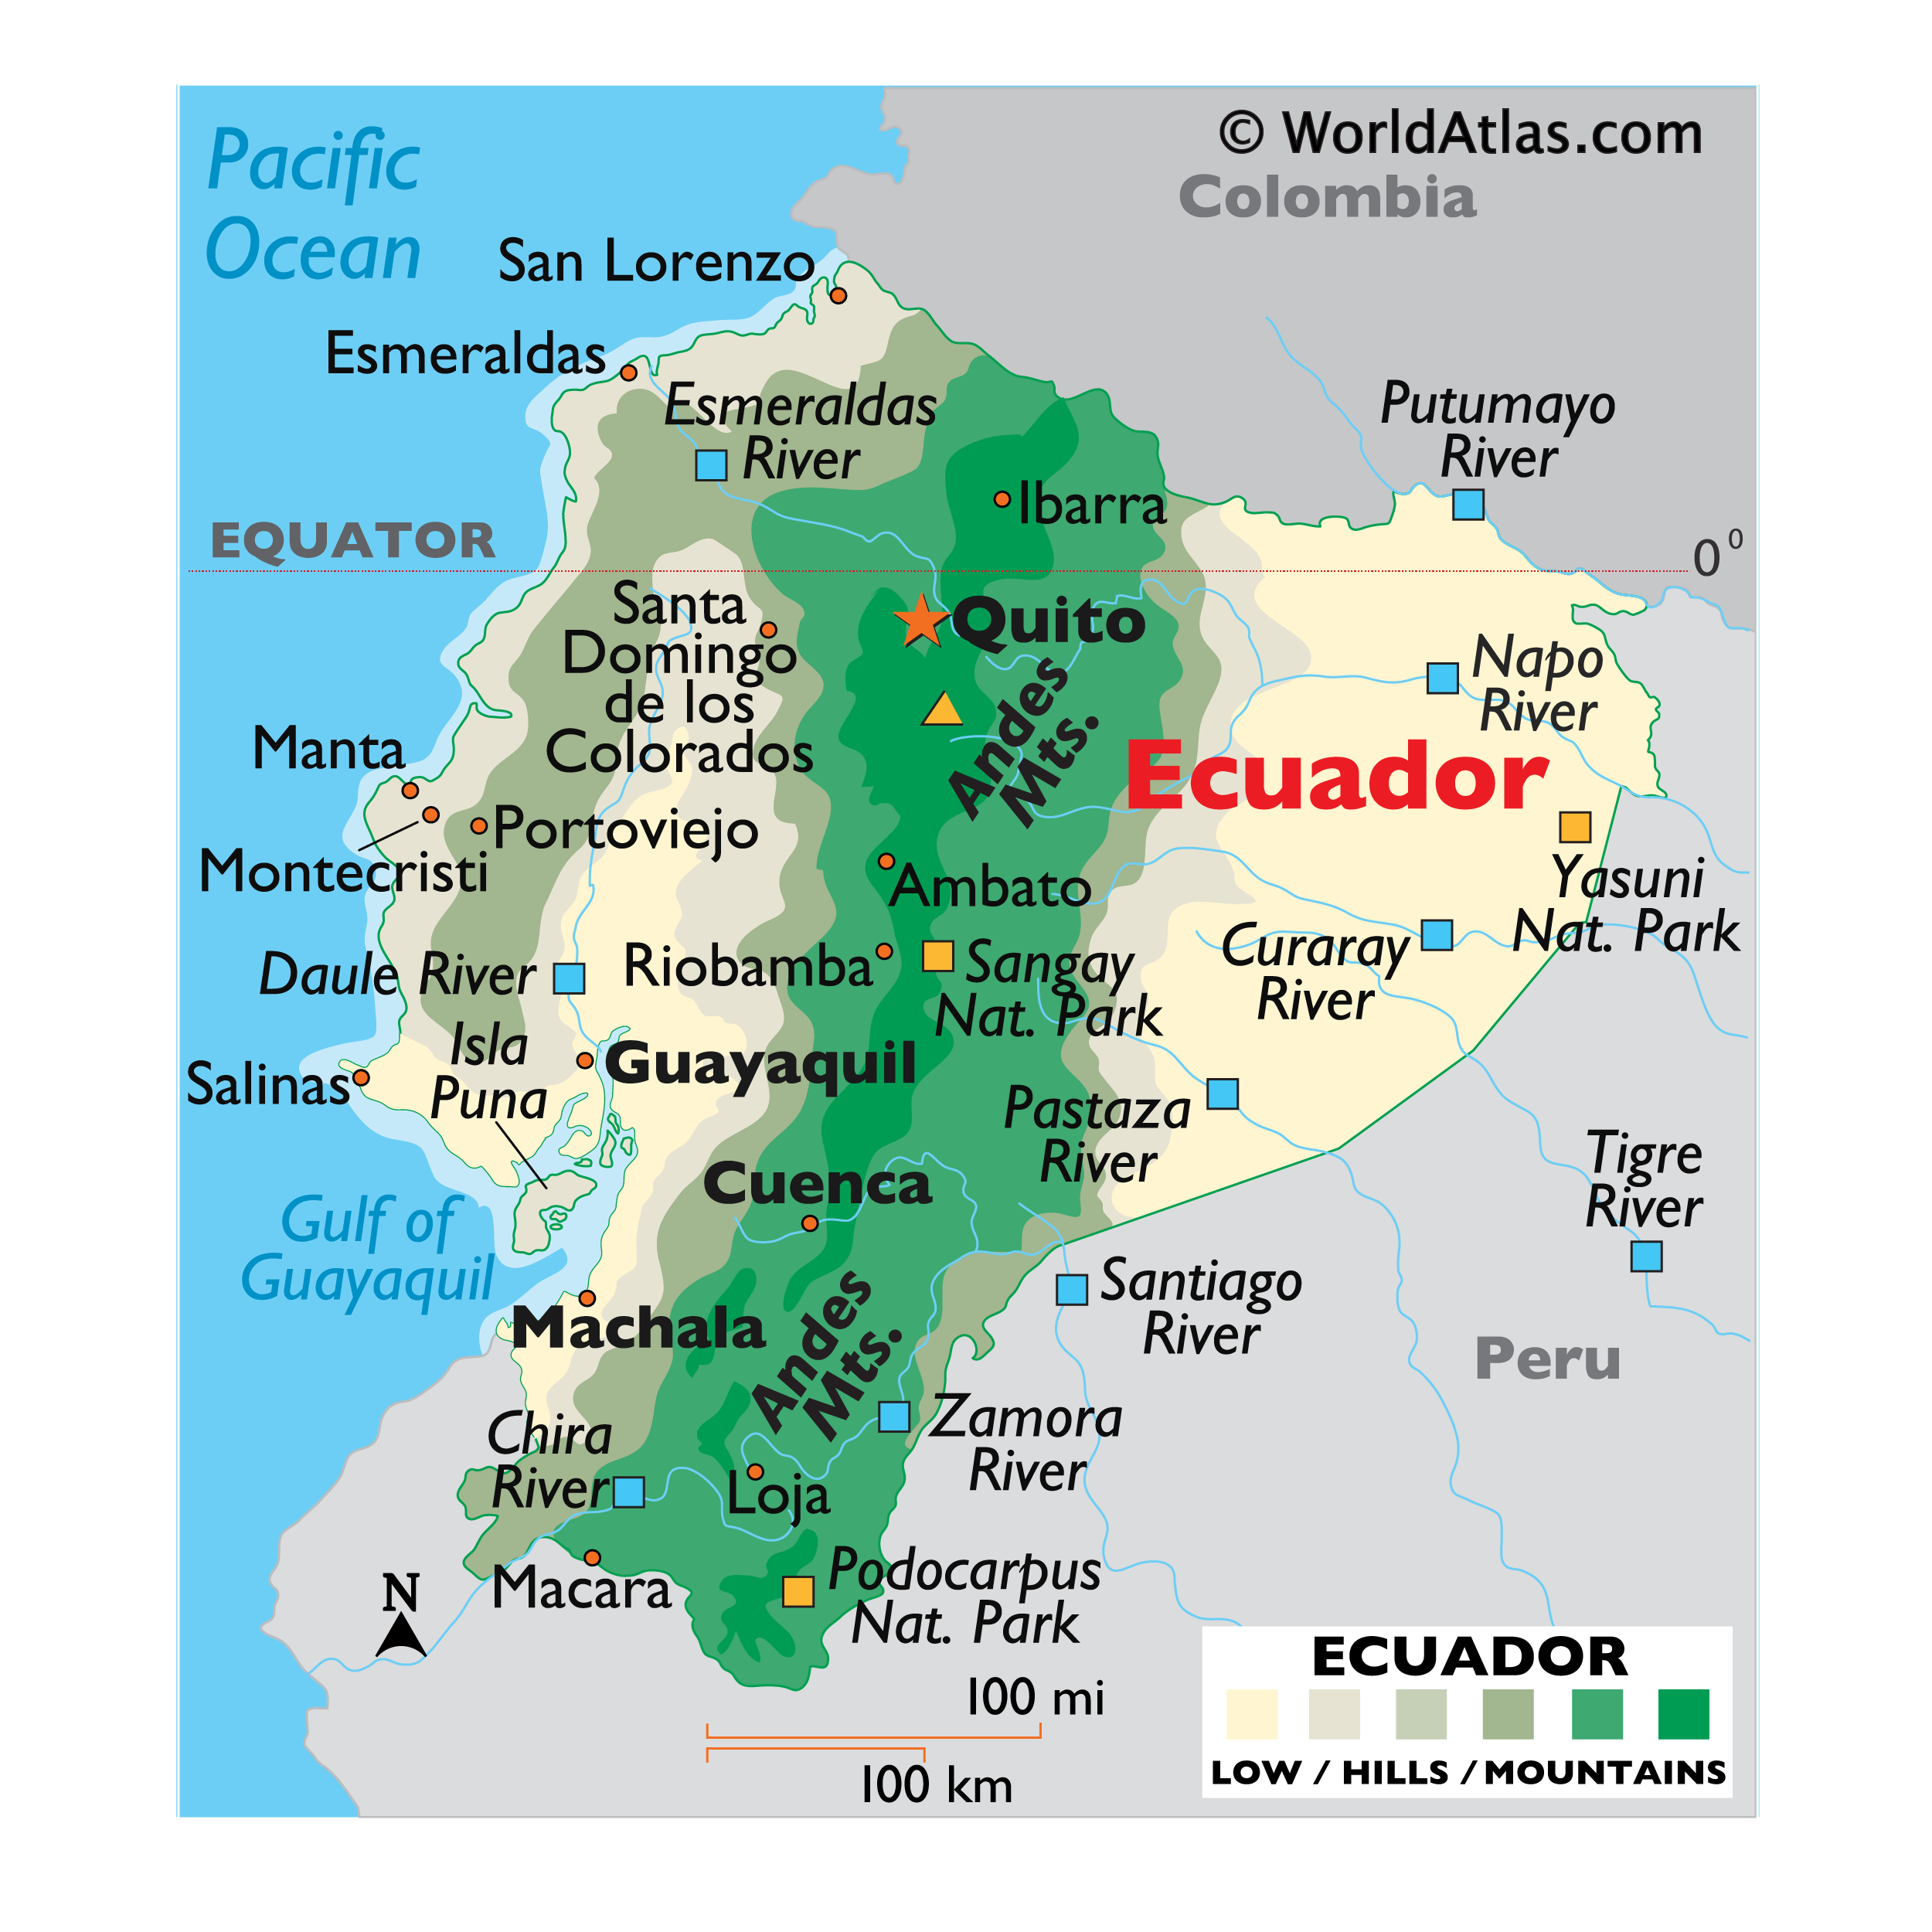 Physical Map of Ecuador showing relief, rivers, mountains ranges, important cities, bordering countries, and more.